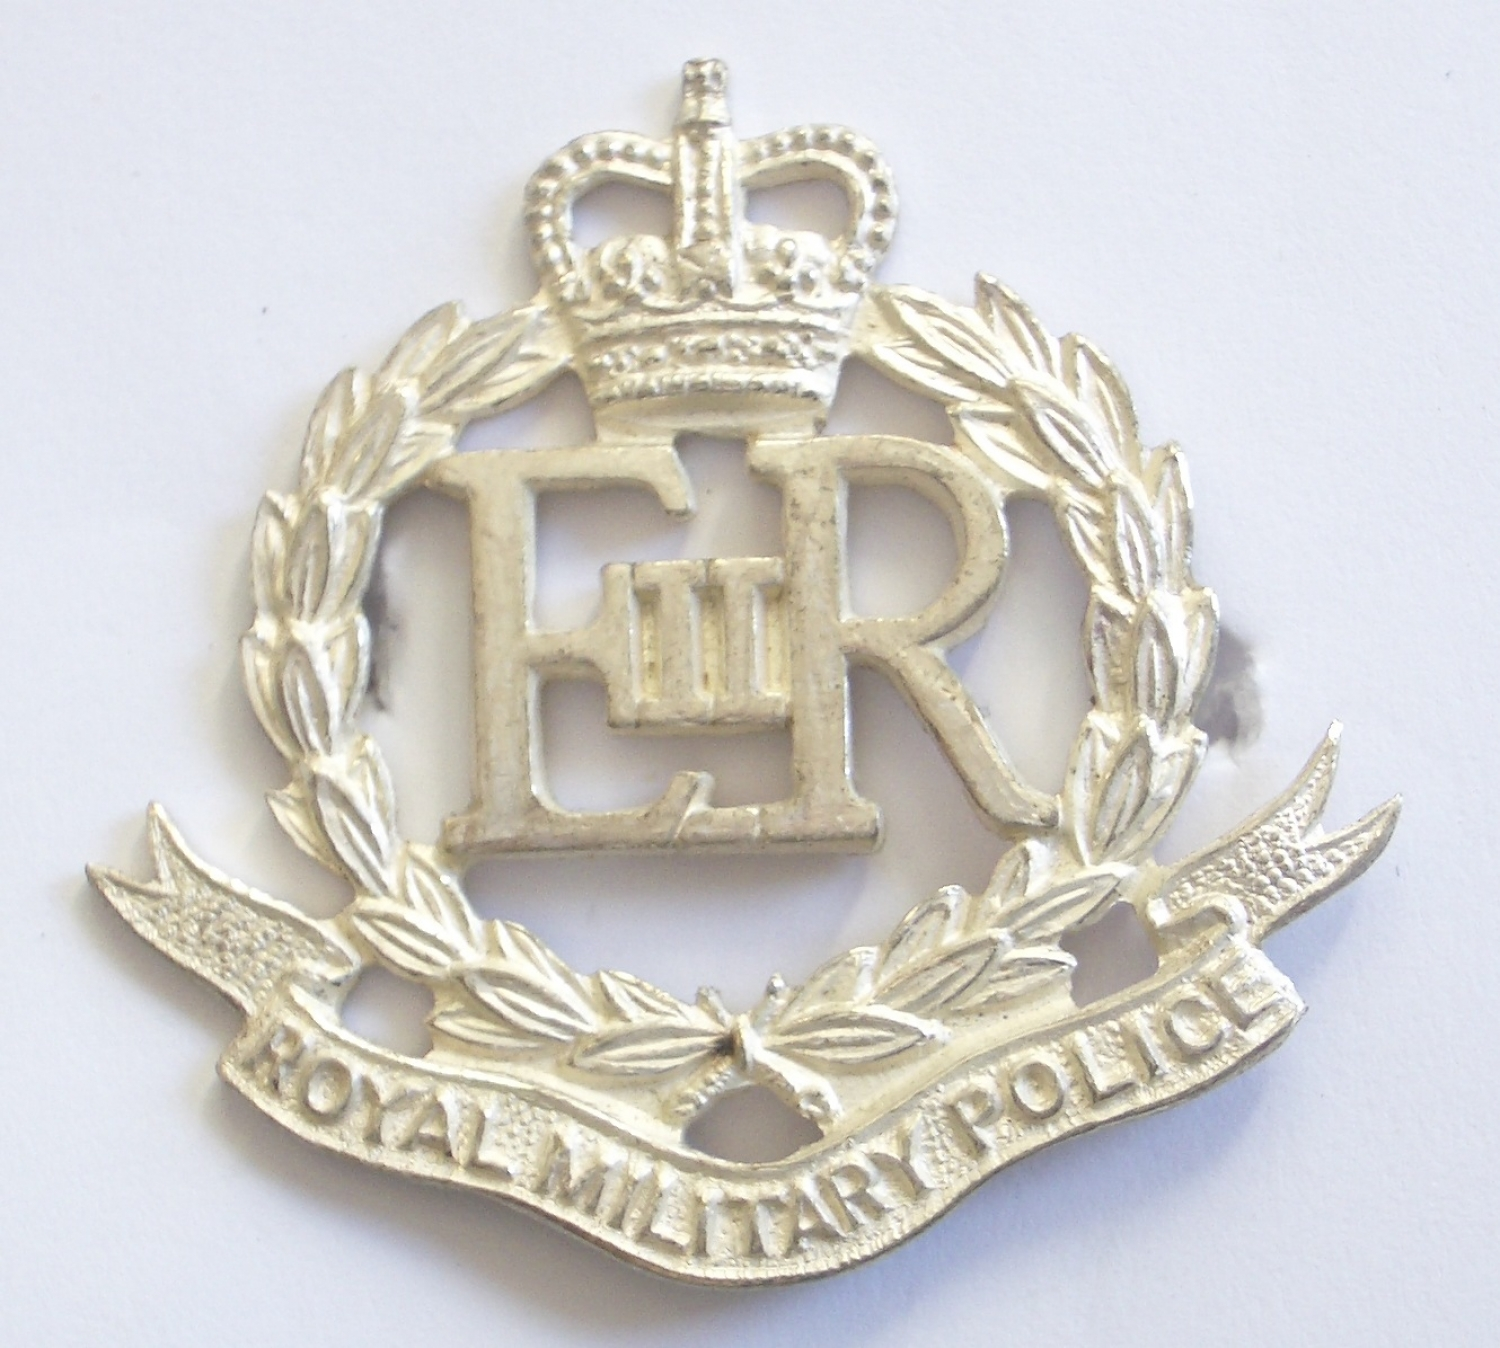 Royal Military Police Officer's cap badge